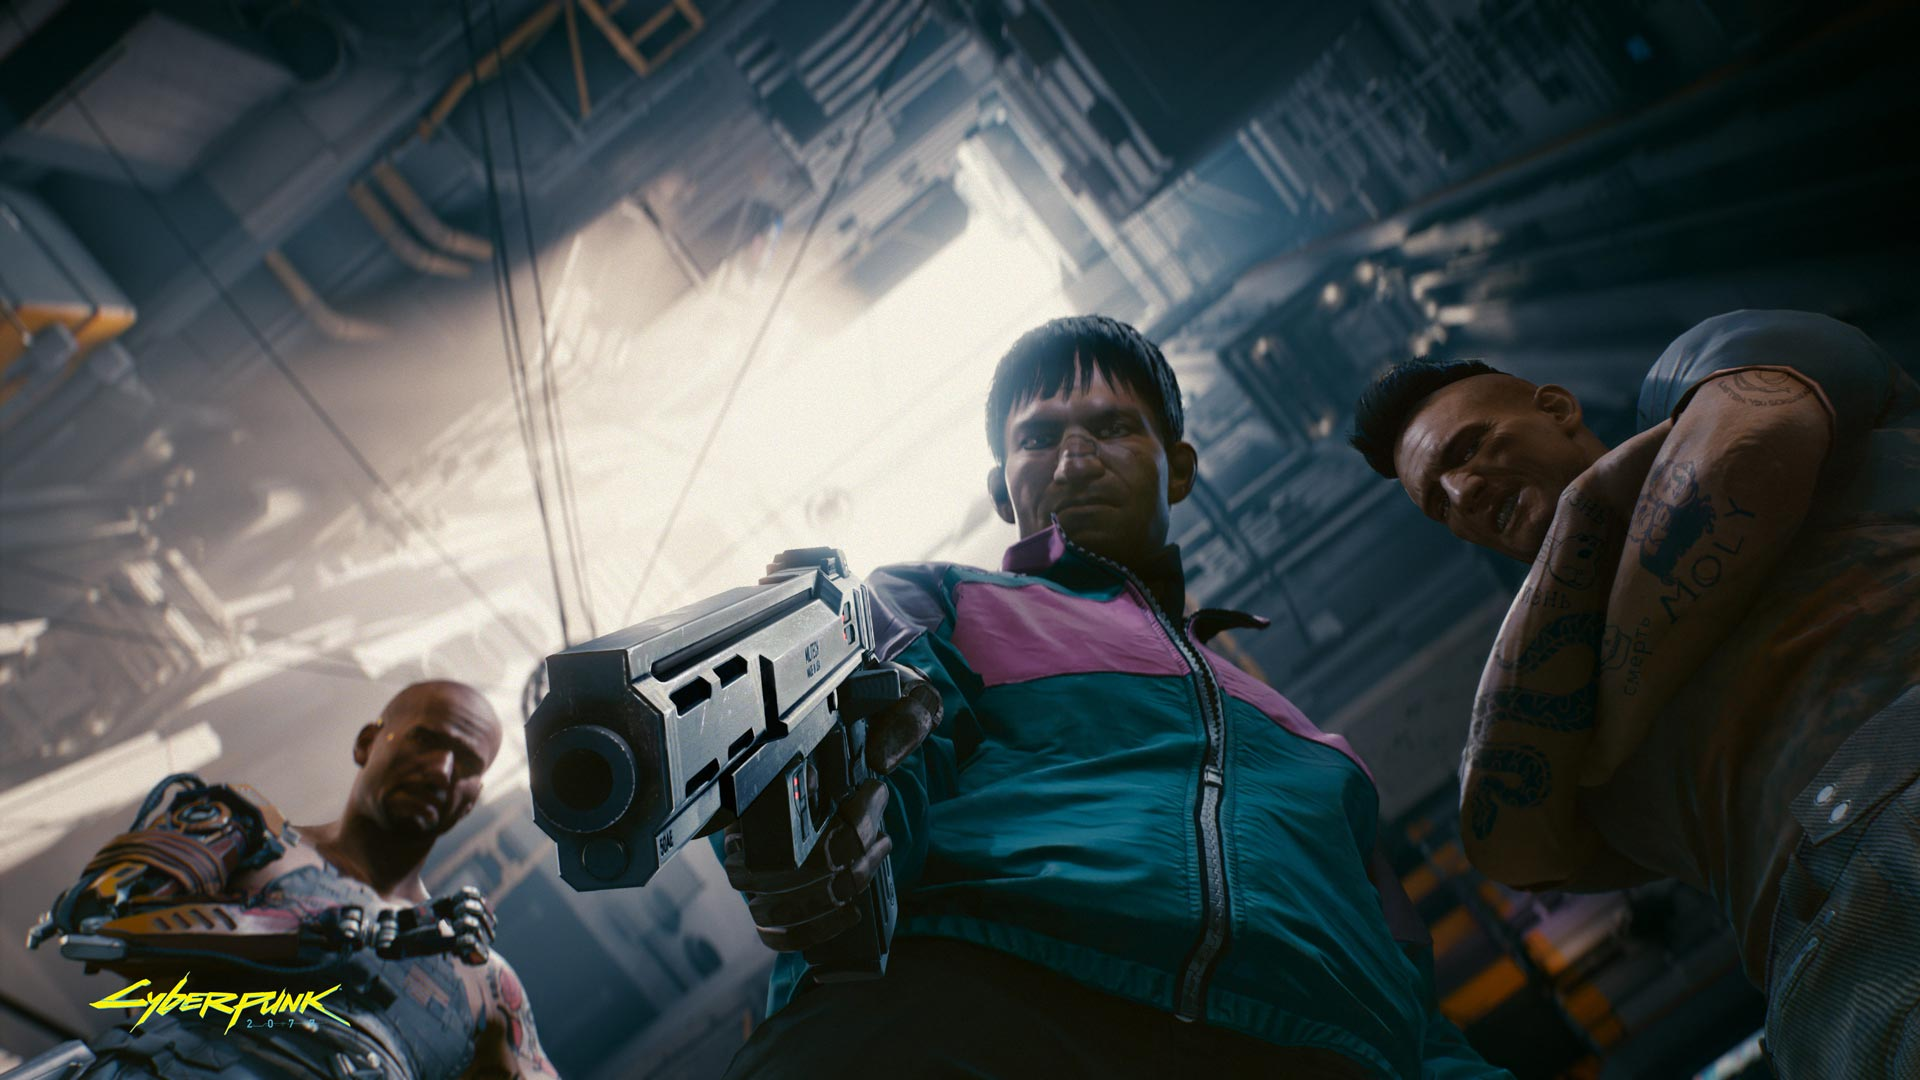 Cyberpunk 2077: The prominently represented beefy character on the right with the distinctive haircut is probablyJackie Welles, you can hire him as support while playing V yourself